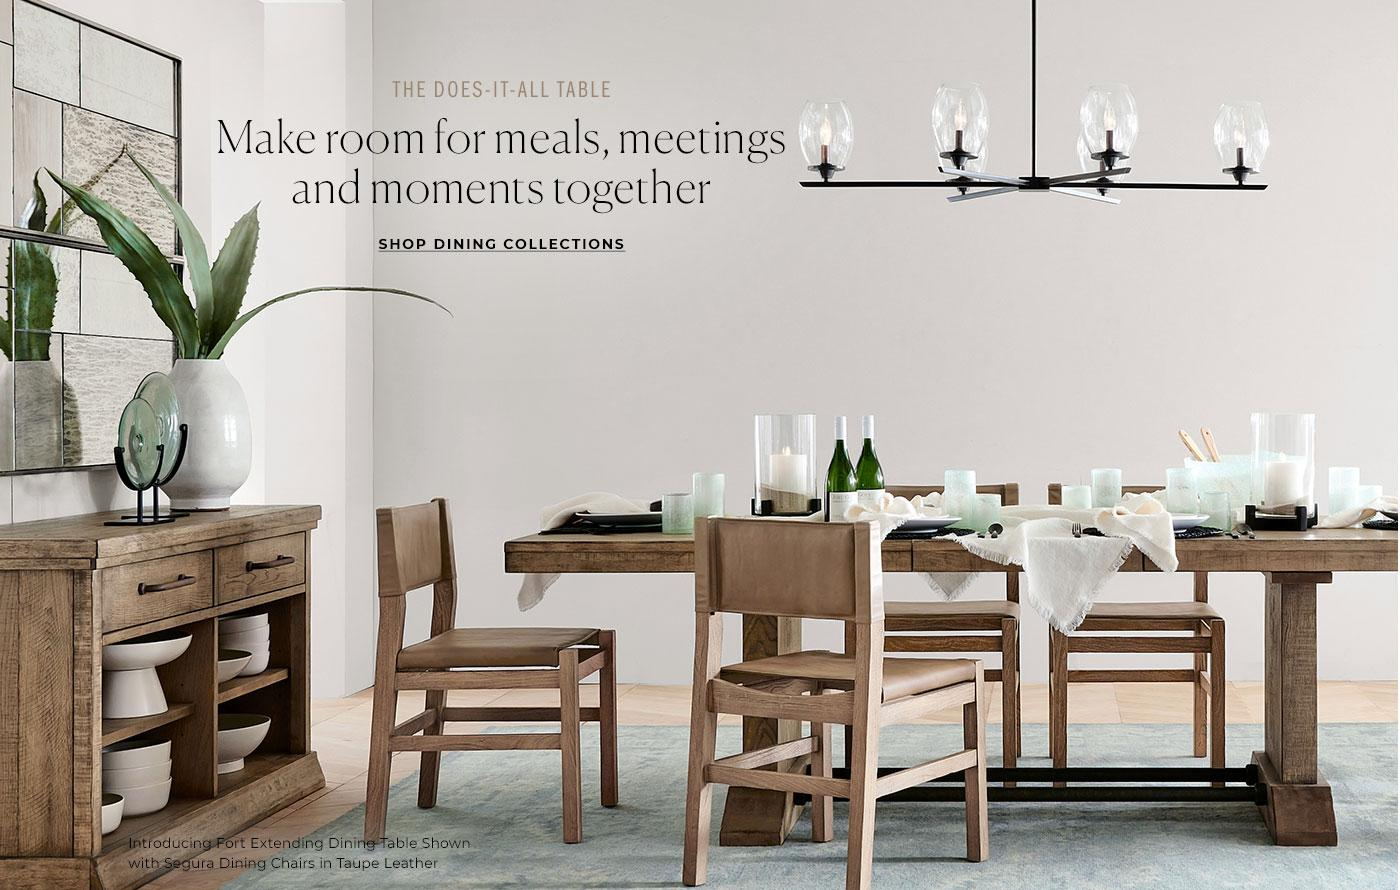 The Does-It-All Table. Shop Dining Collections.